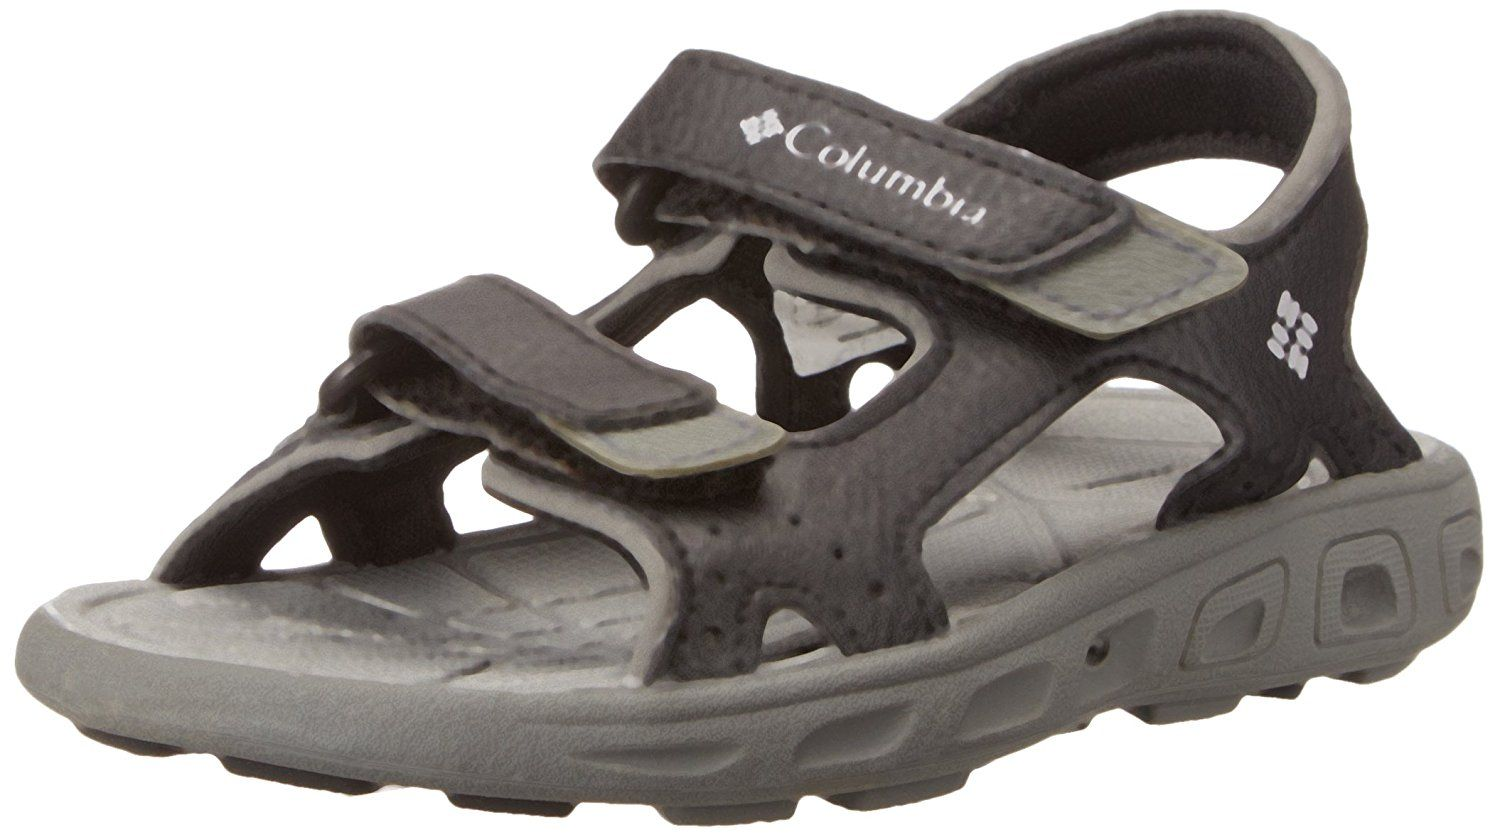 Columbia Childrens Techsun Vent Sandal (Toddler/Little Kid),Black/Columbia Grey,8 M US Toddler *** If you love this, read review now : Girls sandals